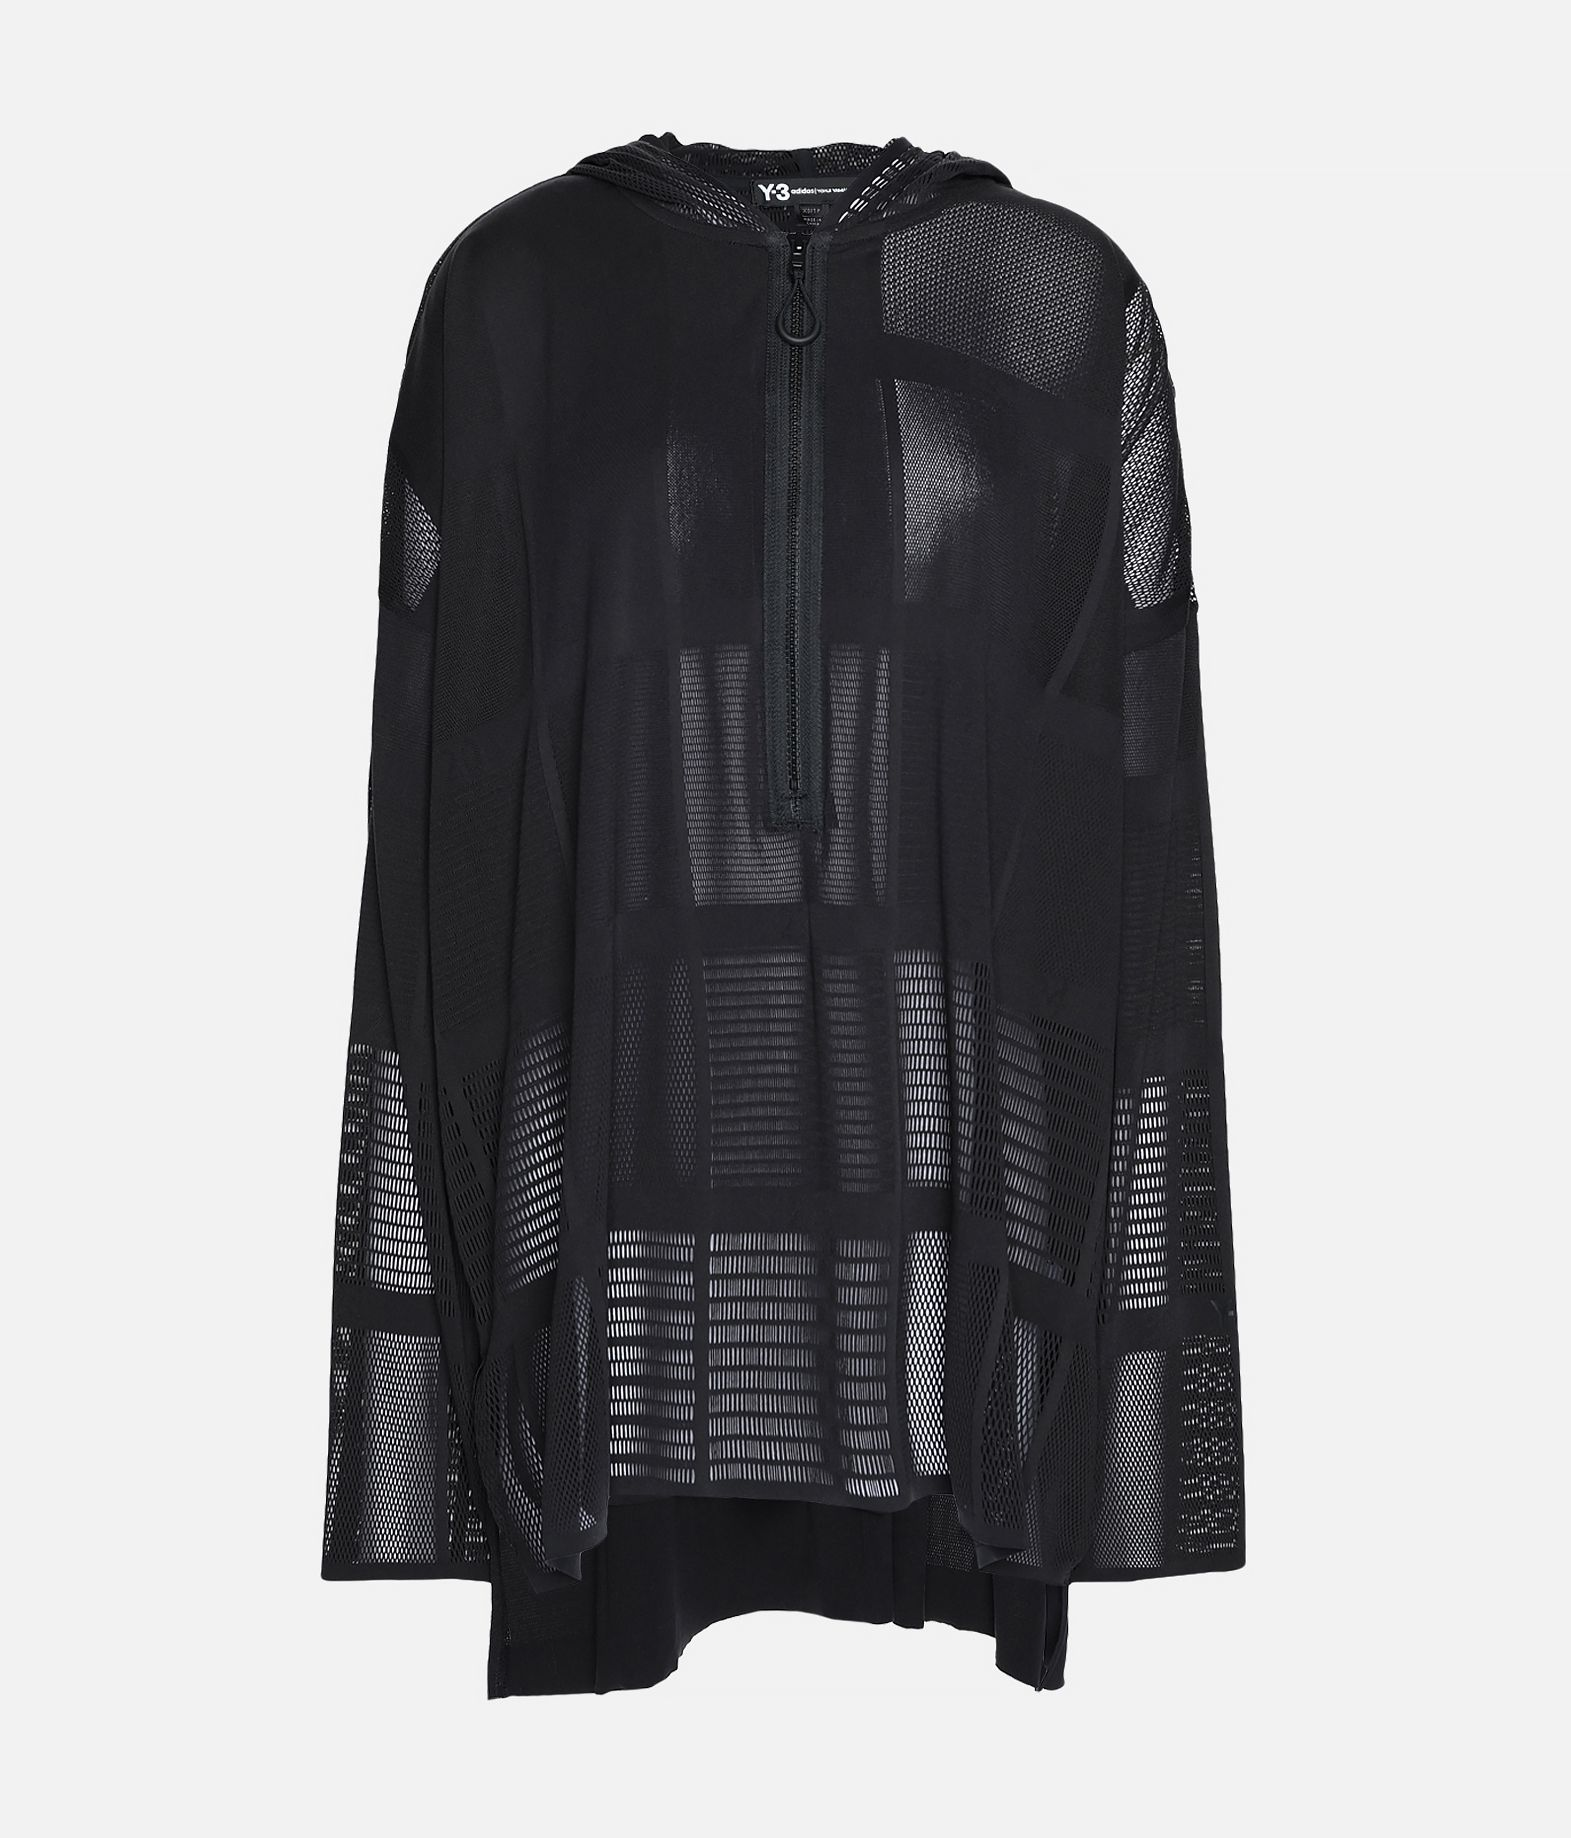 Y-3 Y-3 Patchwork Hoodie Hooded sweatshirt Woman f